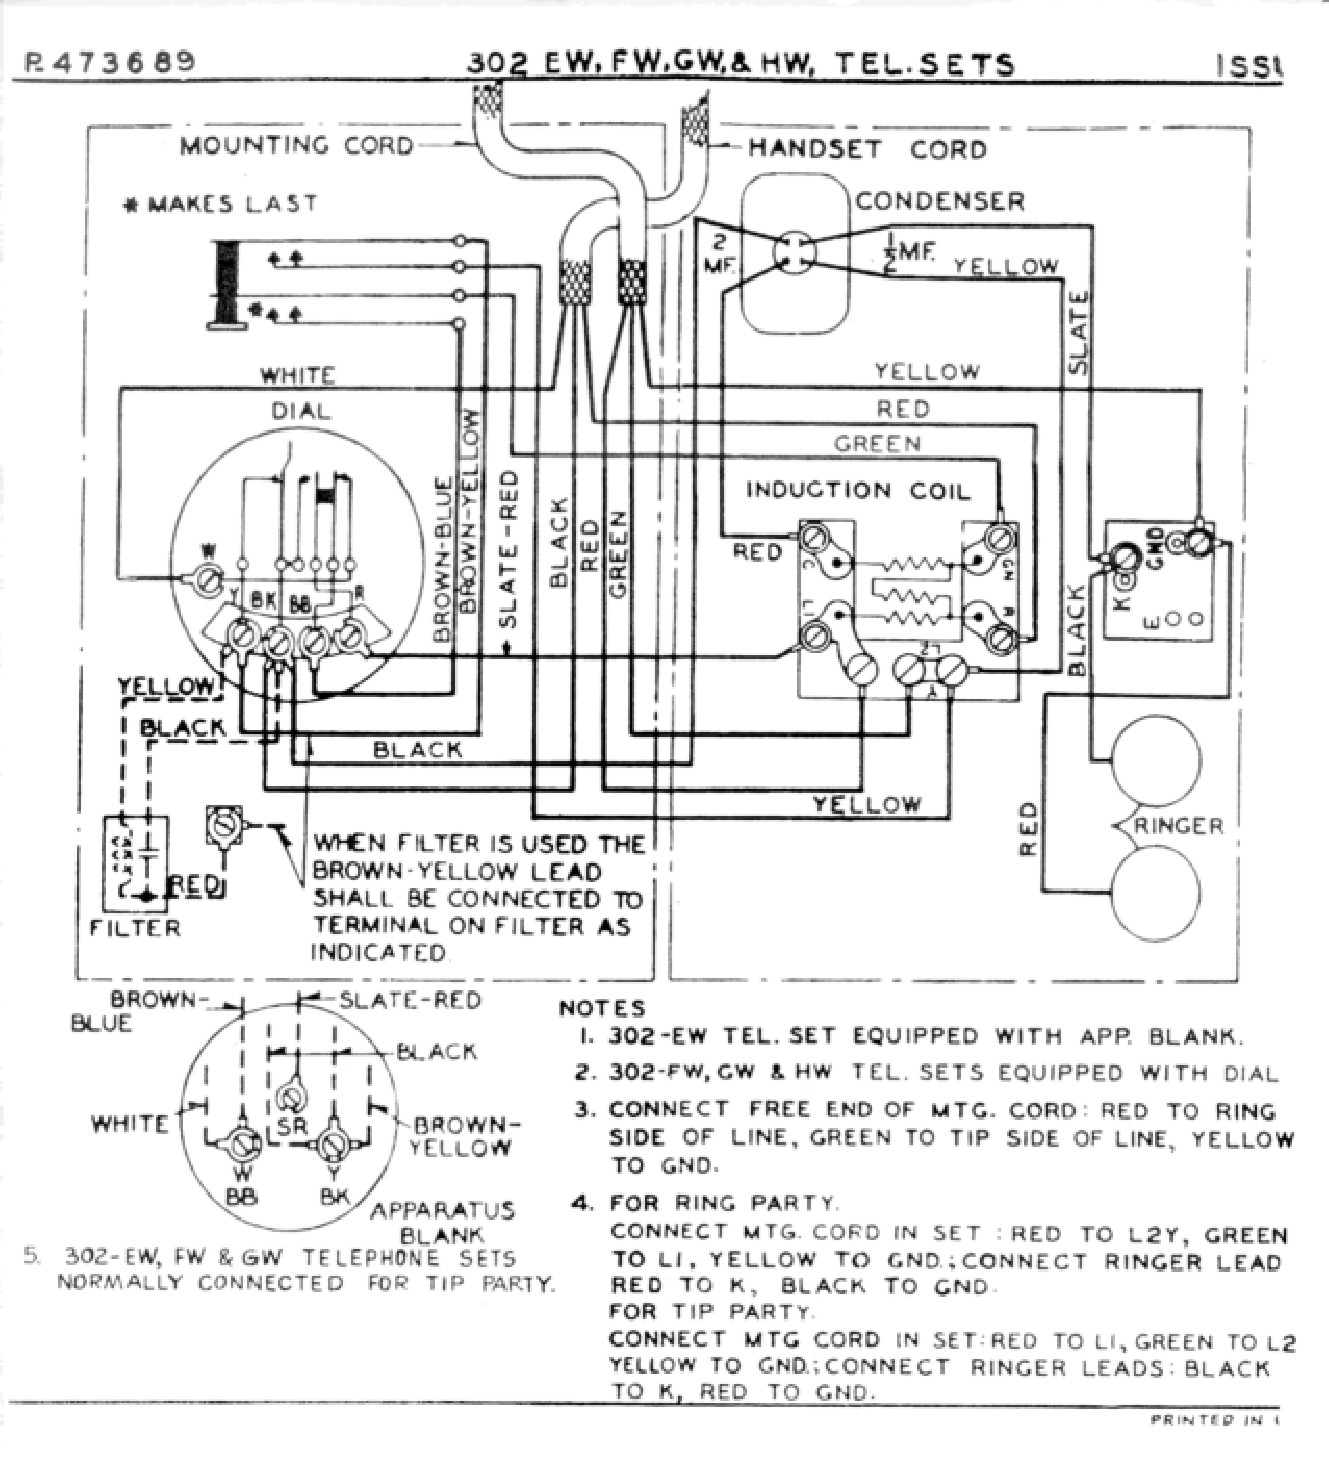 comcast wiring requirements